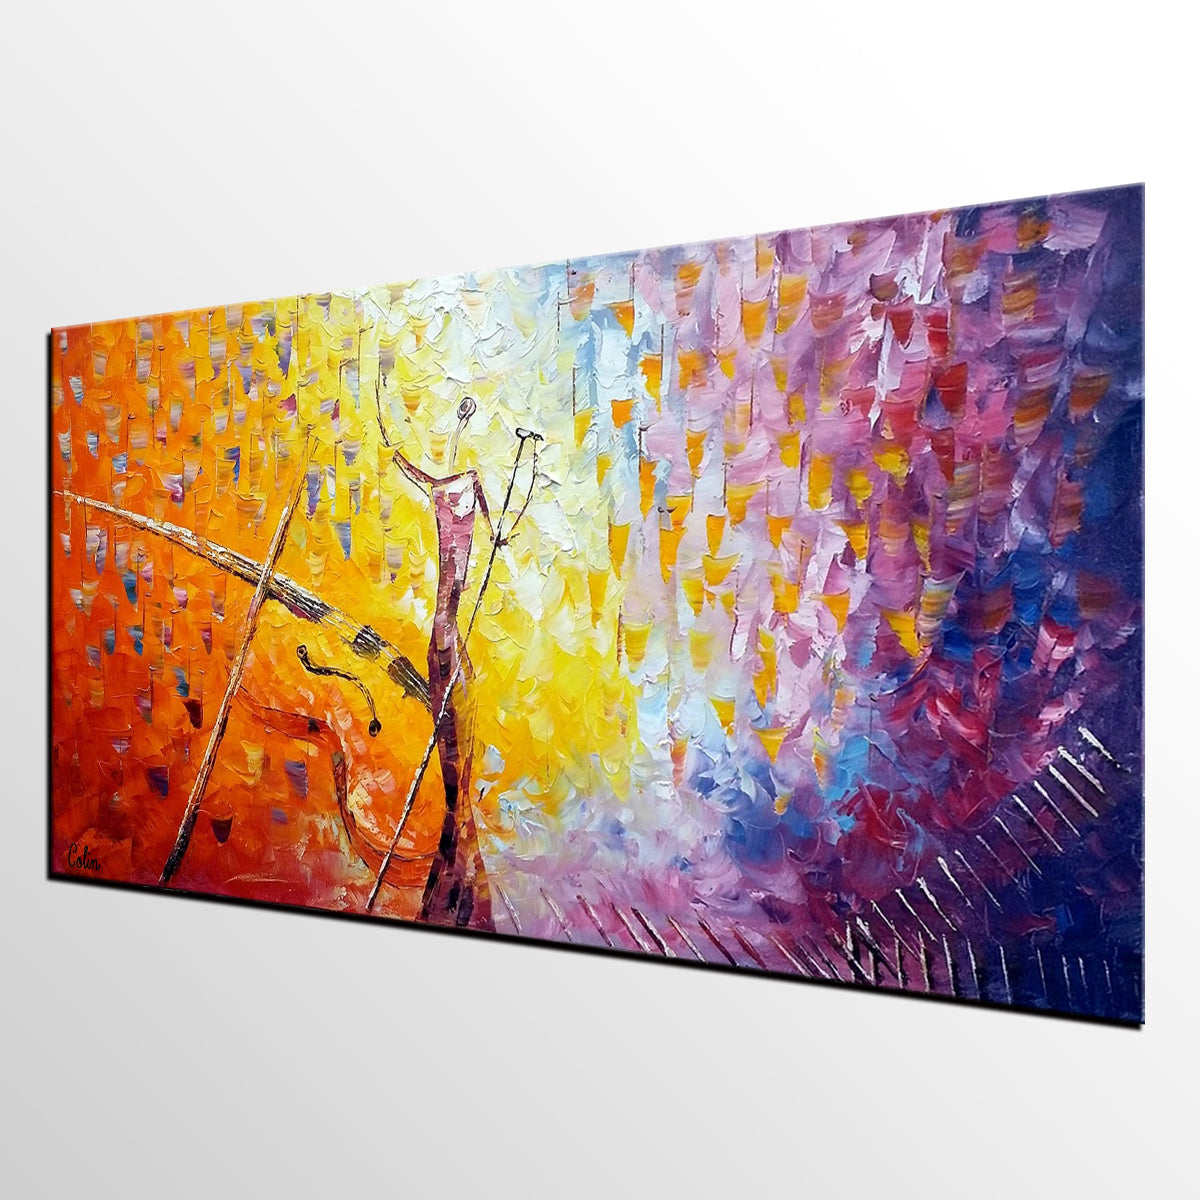 Impasto Art, Abstract Painting, Pop Singer Painting, Bar Wall Art, Canvas Painting for Sale